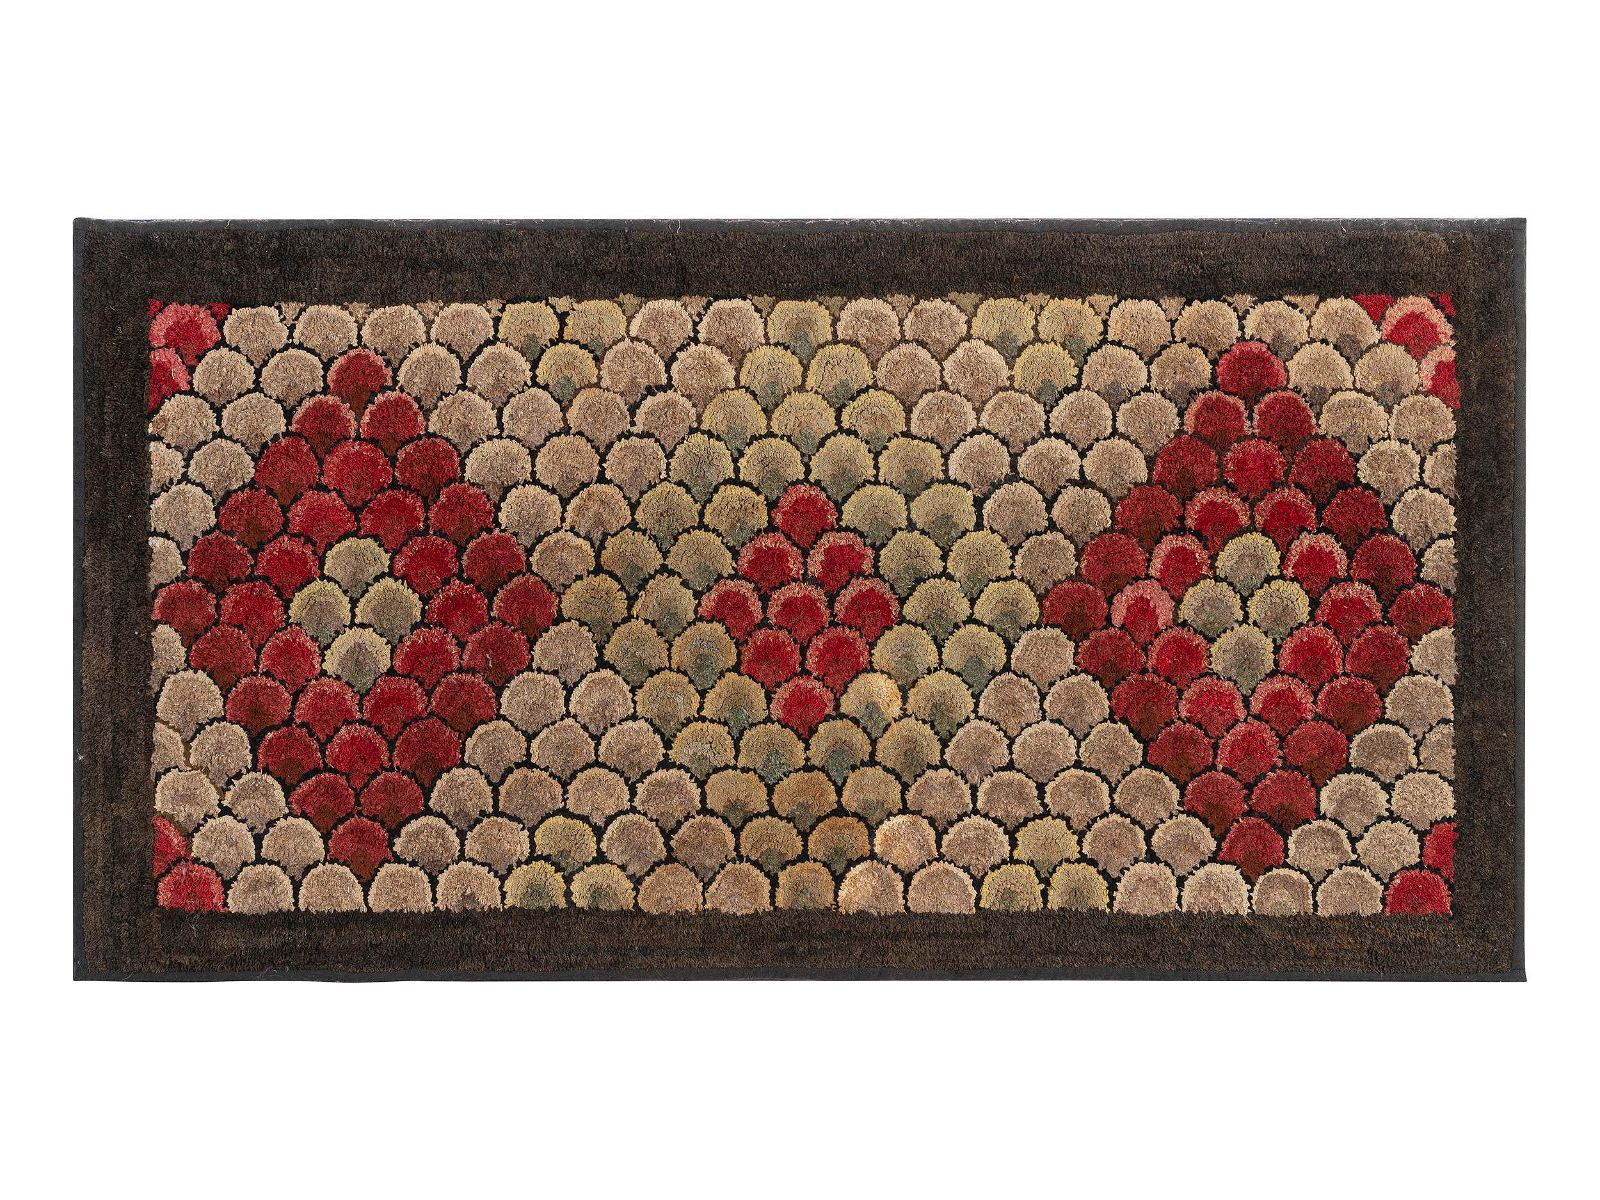 An American Fish Scale and Diamond Pattern Hooked Rug